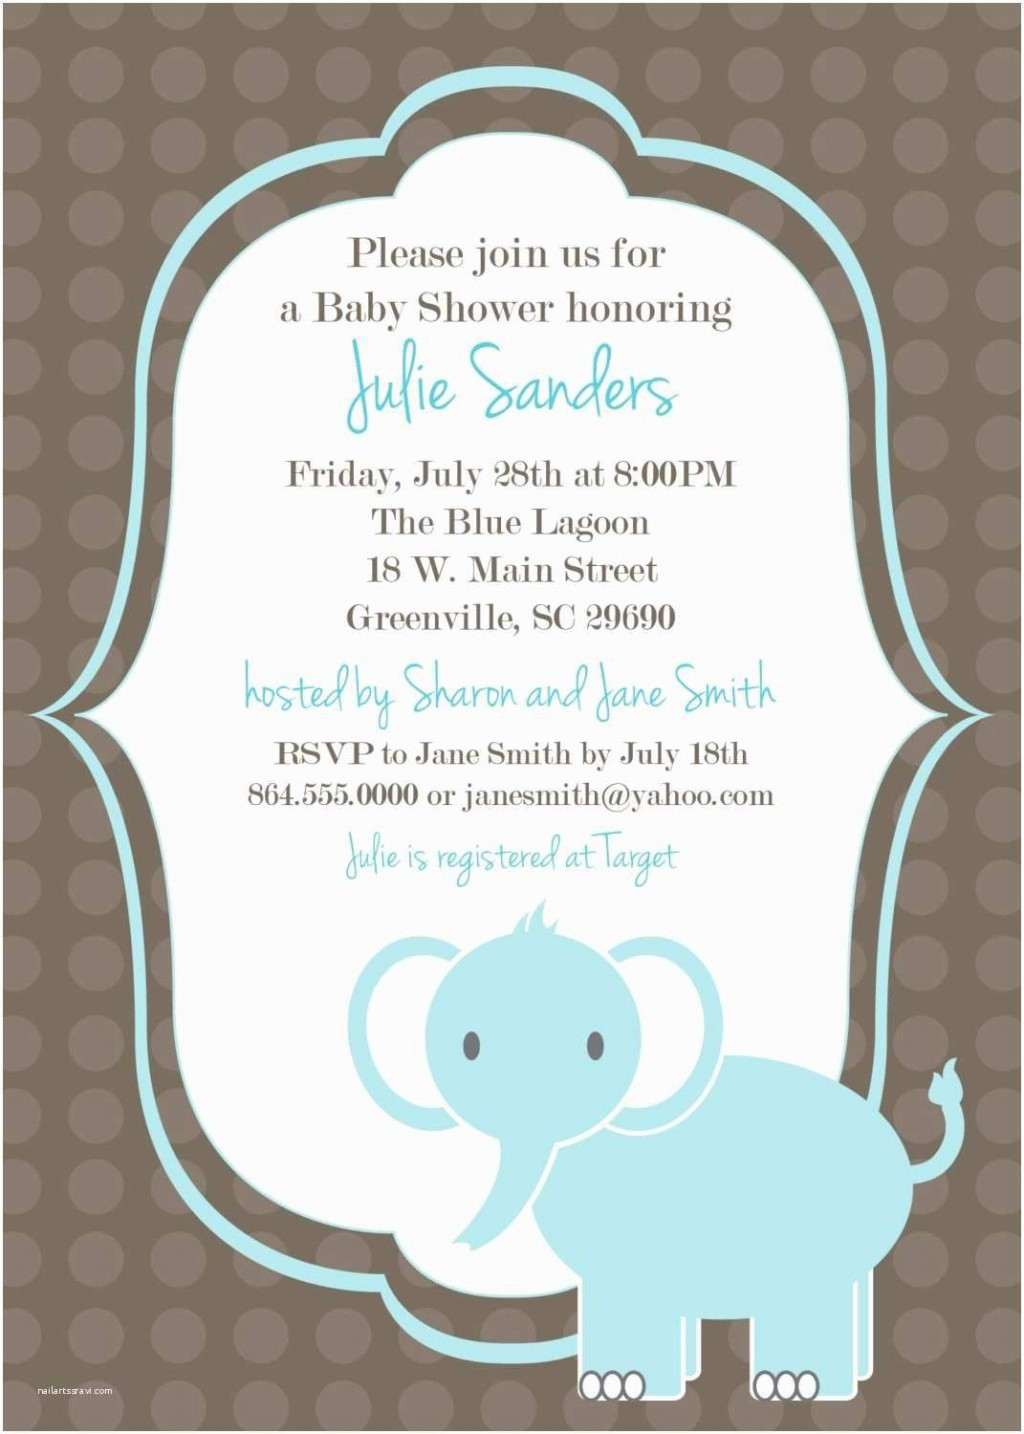 002 Archaicawful Baby Shower Invitation Template Word Photo  Office Wording Sample Work DownloadLarge